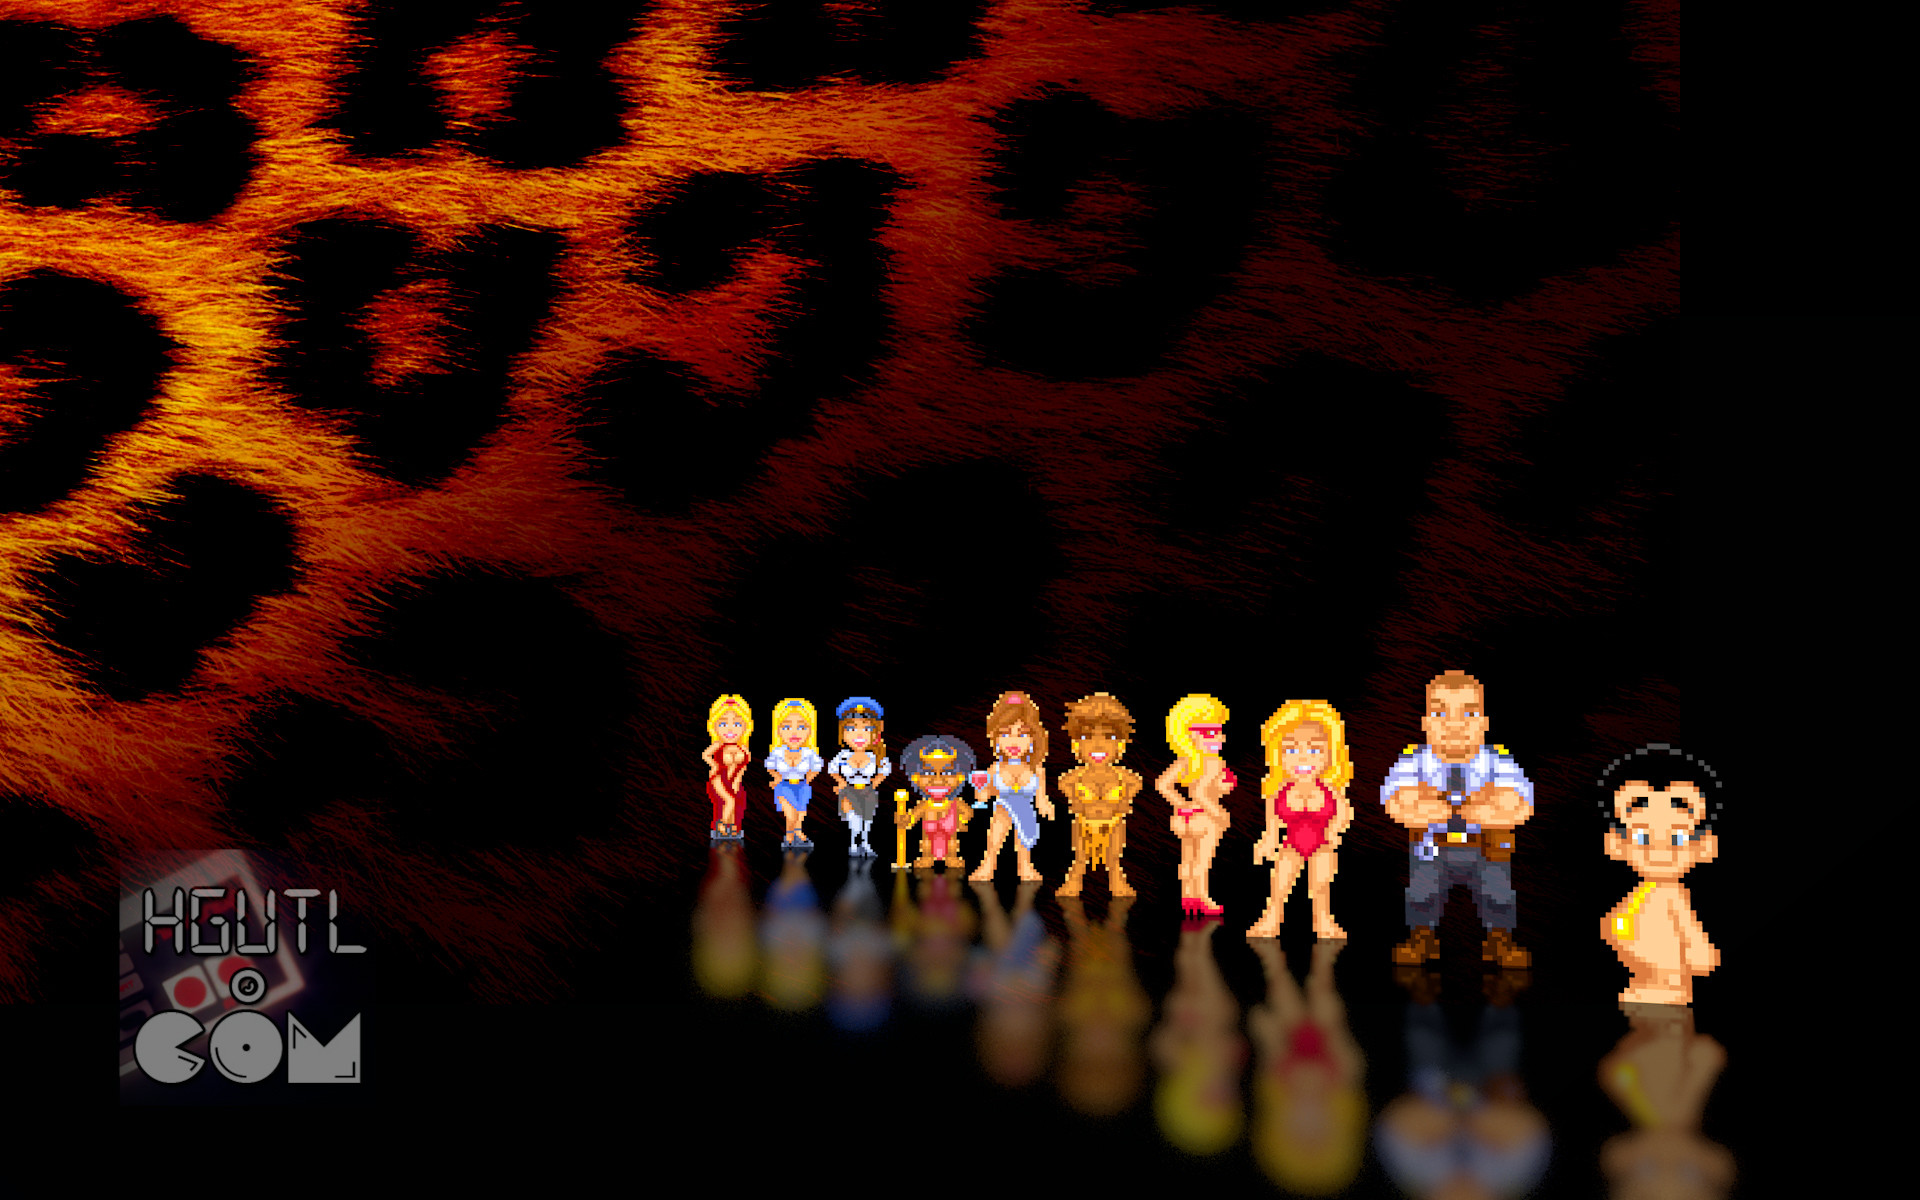 Retro Video Gaming images Leisure suit Larry HD wallpaper and background  photos